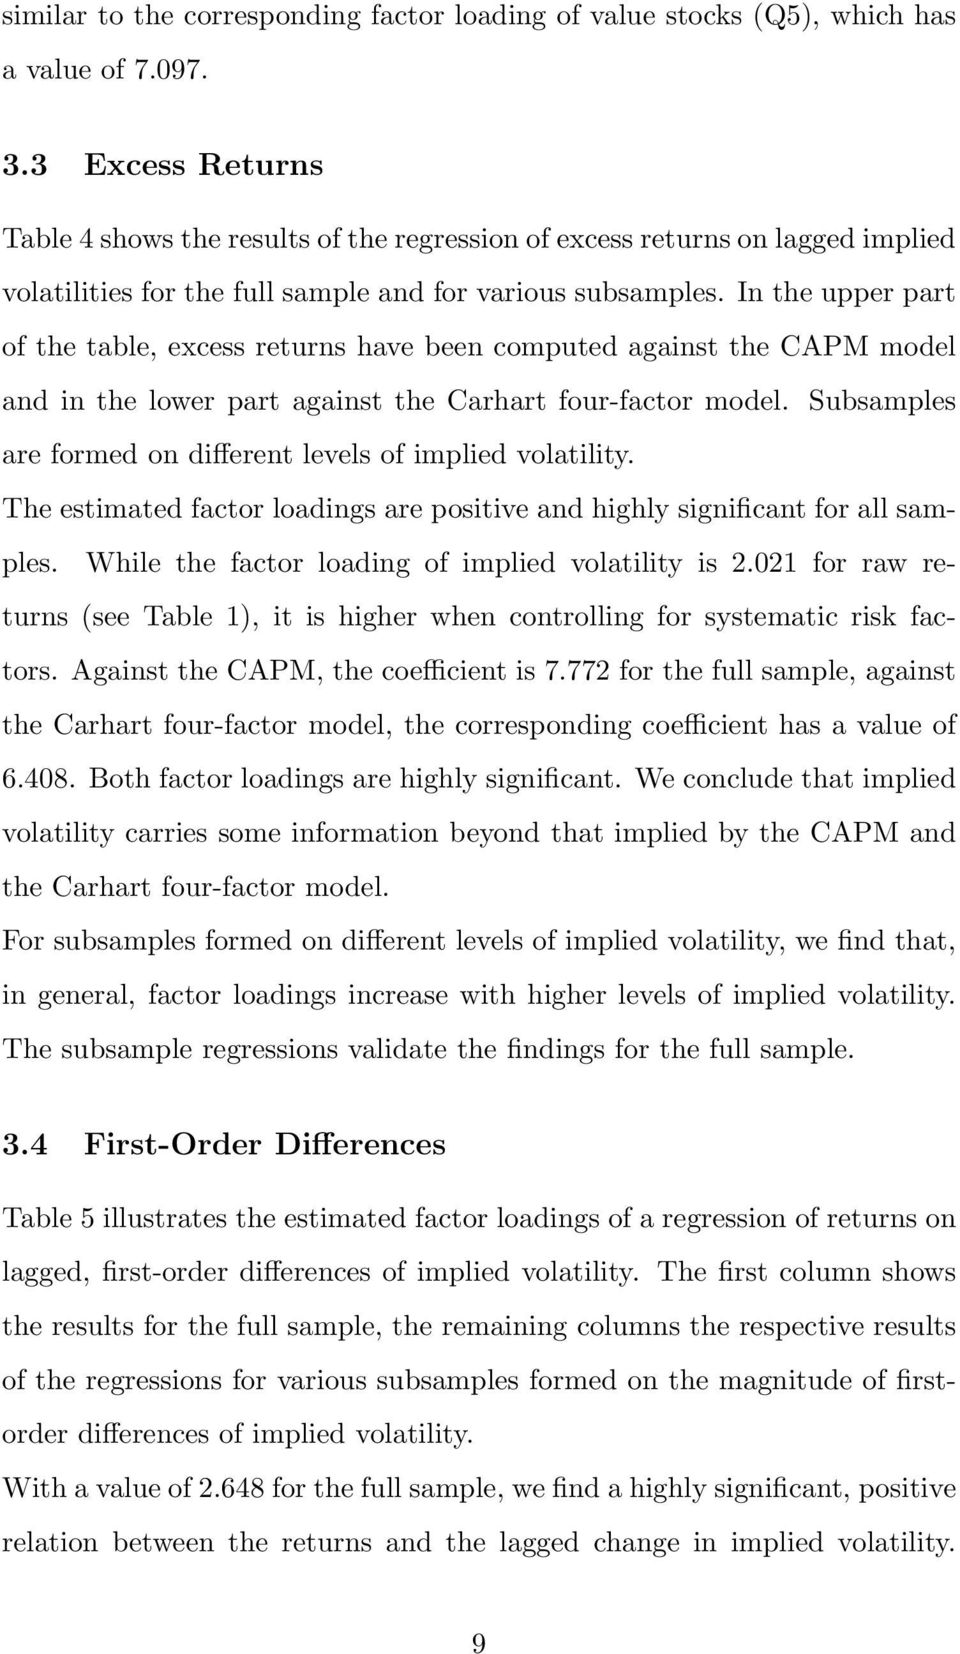 In the upper part of the table, excess returns have been computed against the CAPM model and in the lower part against the Carhart four-factor model.